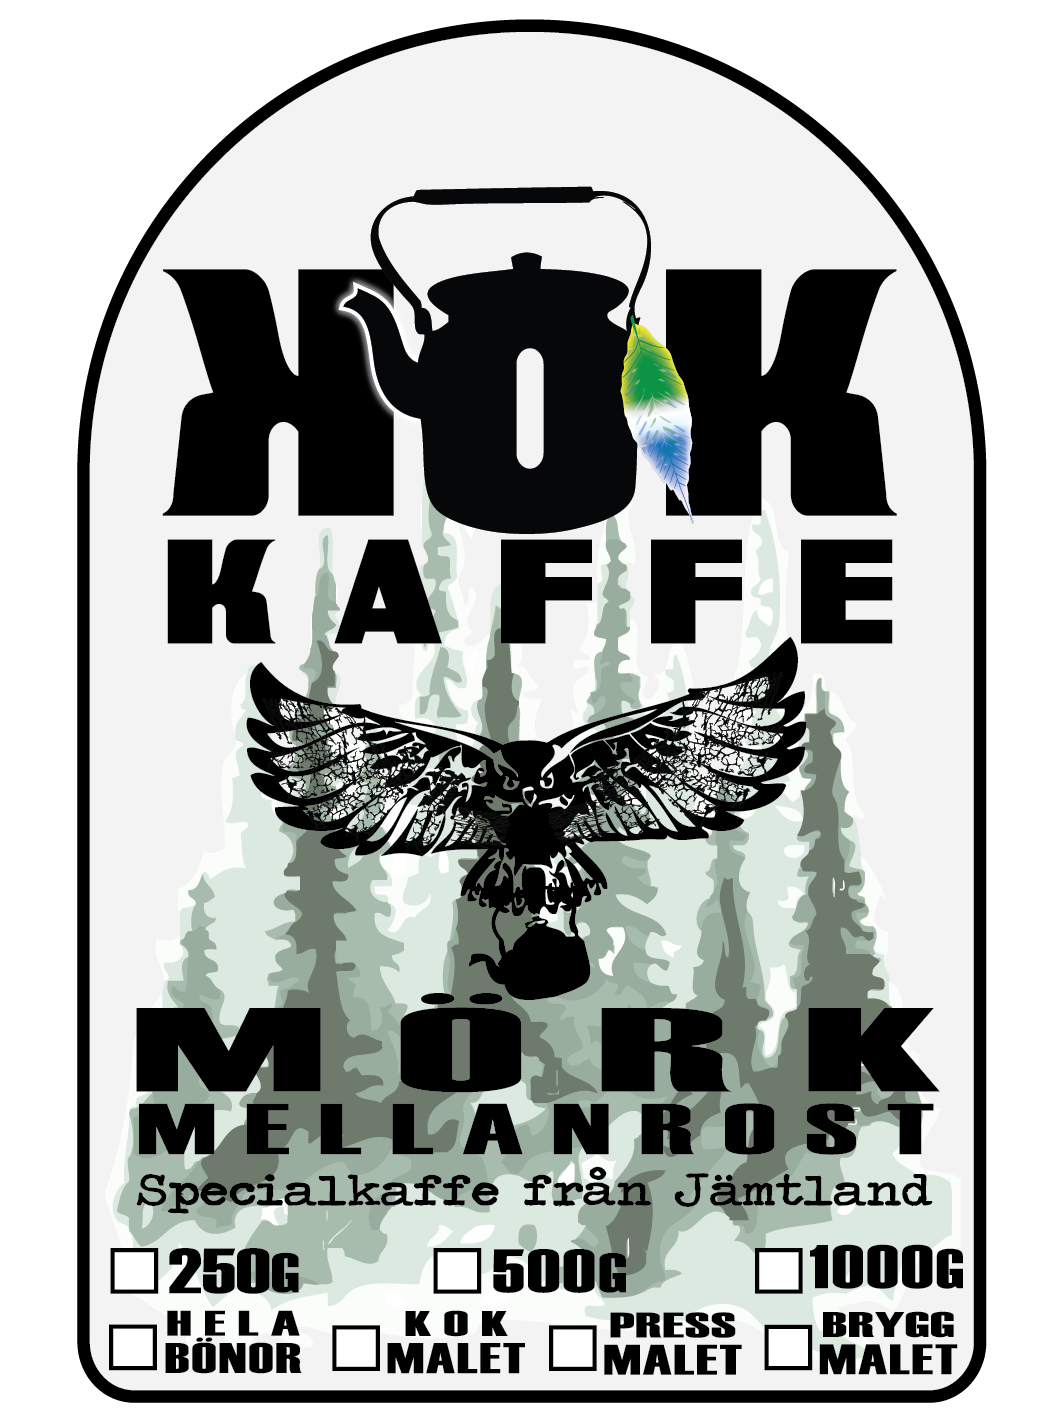 Kokkaffe - Nordic Coffee